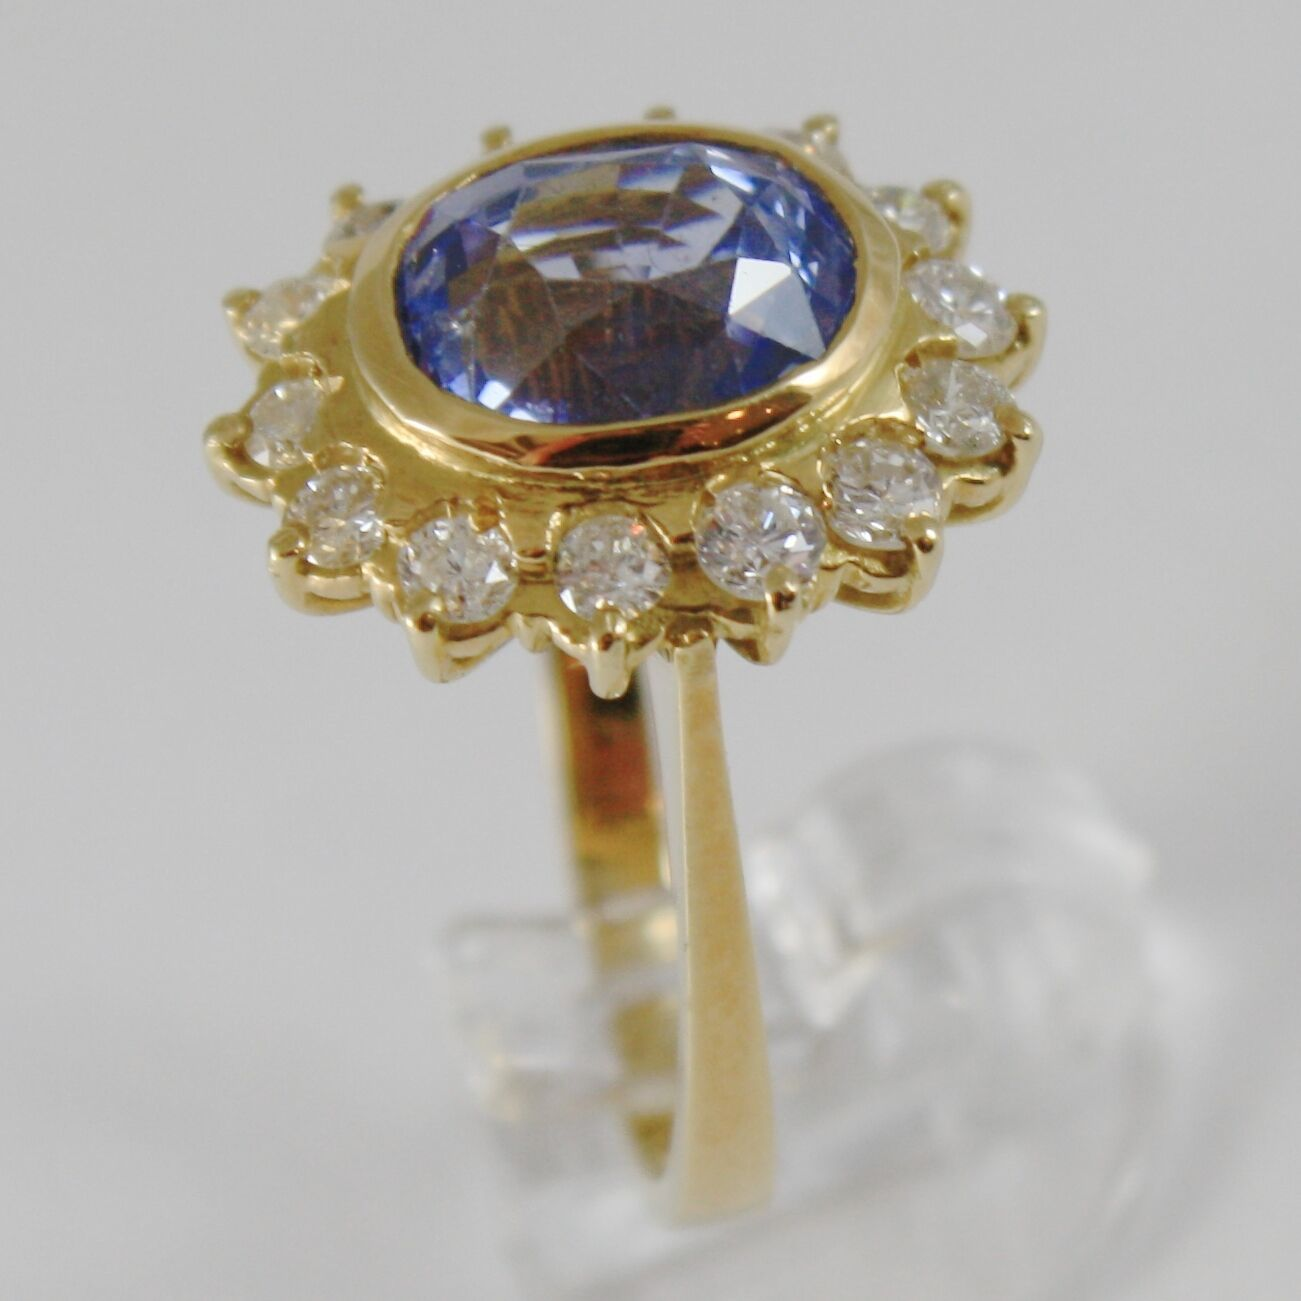 18K YELLOW GOLD BAND FLOWER RING WITH DIAMONDS AND BLUE TOPAZ, MADE IN ITALY